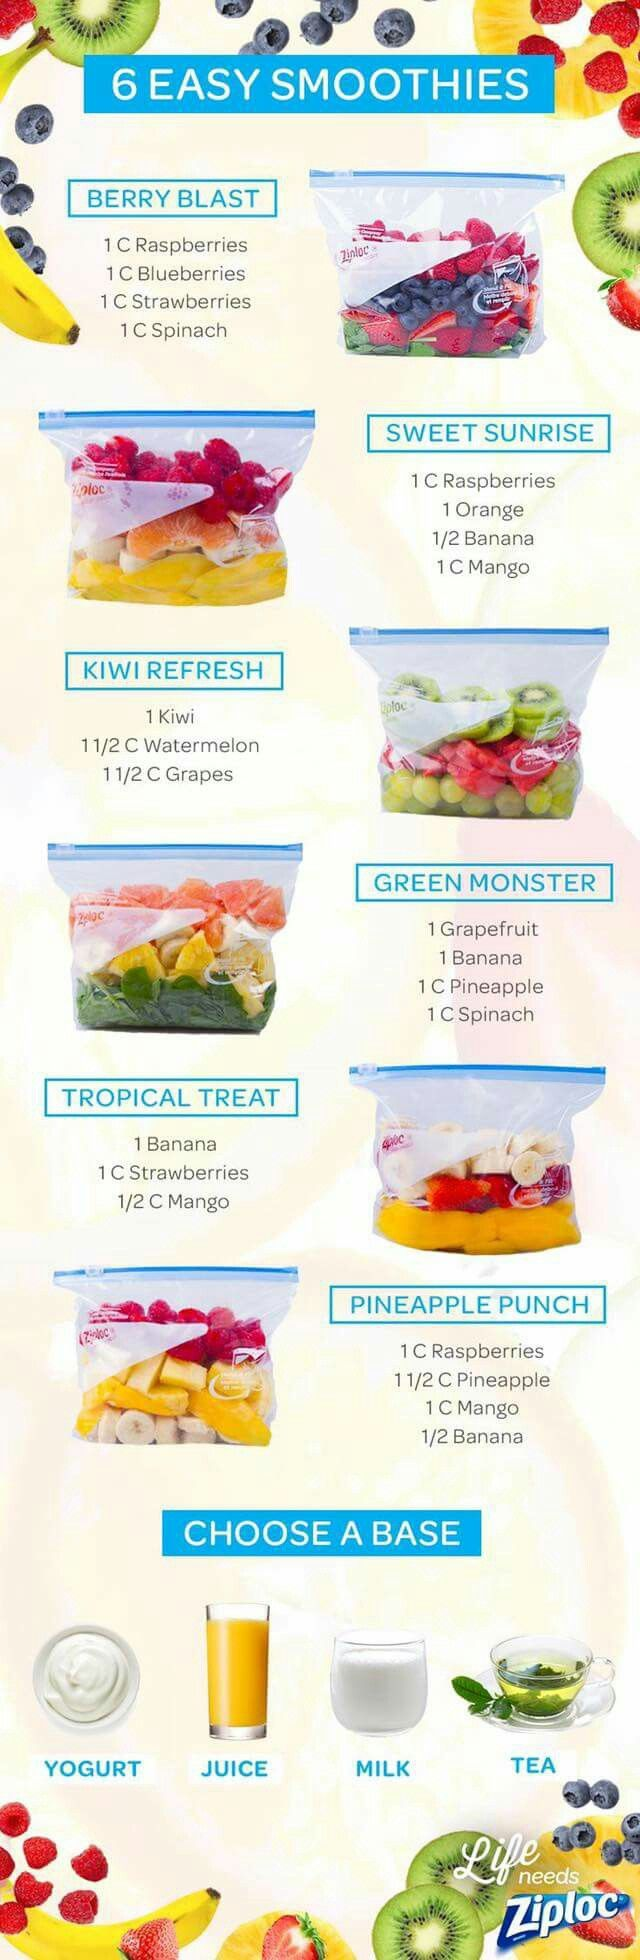 Smoothie Recipe Ideas